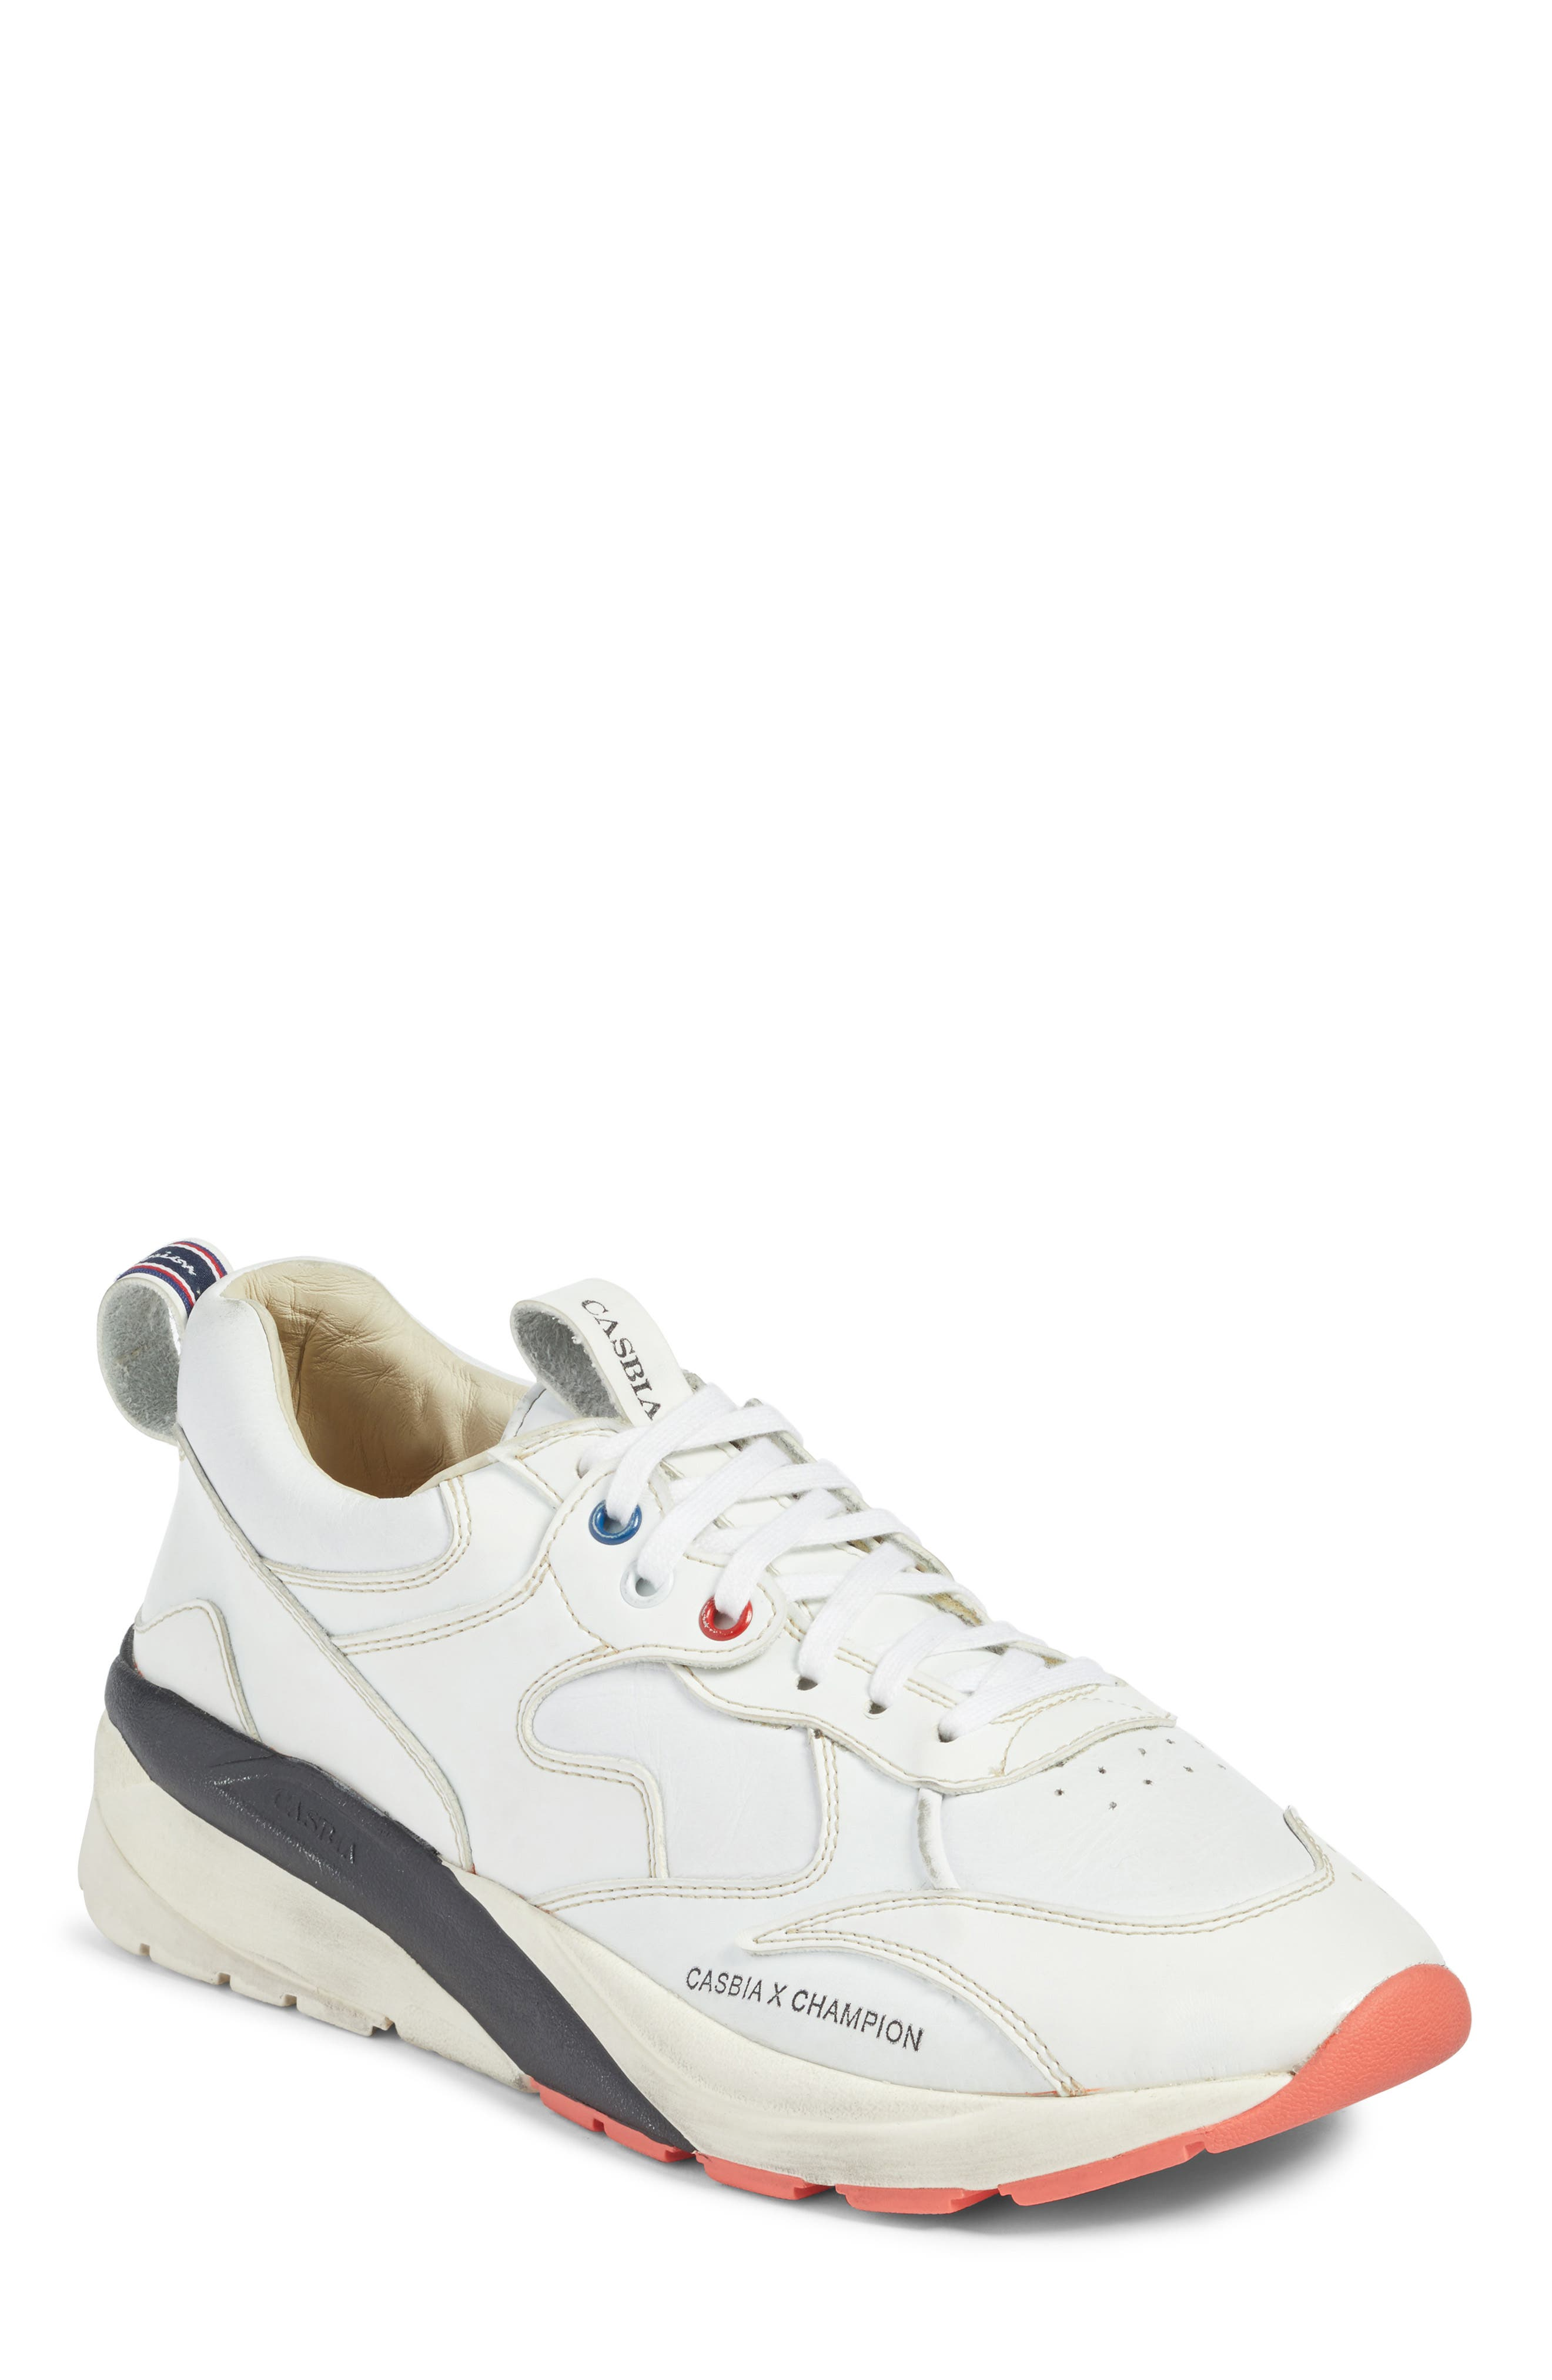 Champion Veloce ATL Sneaker,                         Main,                         color, White Leather